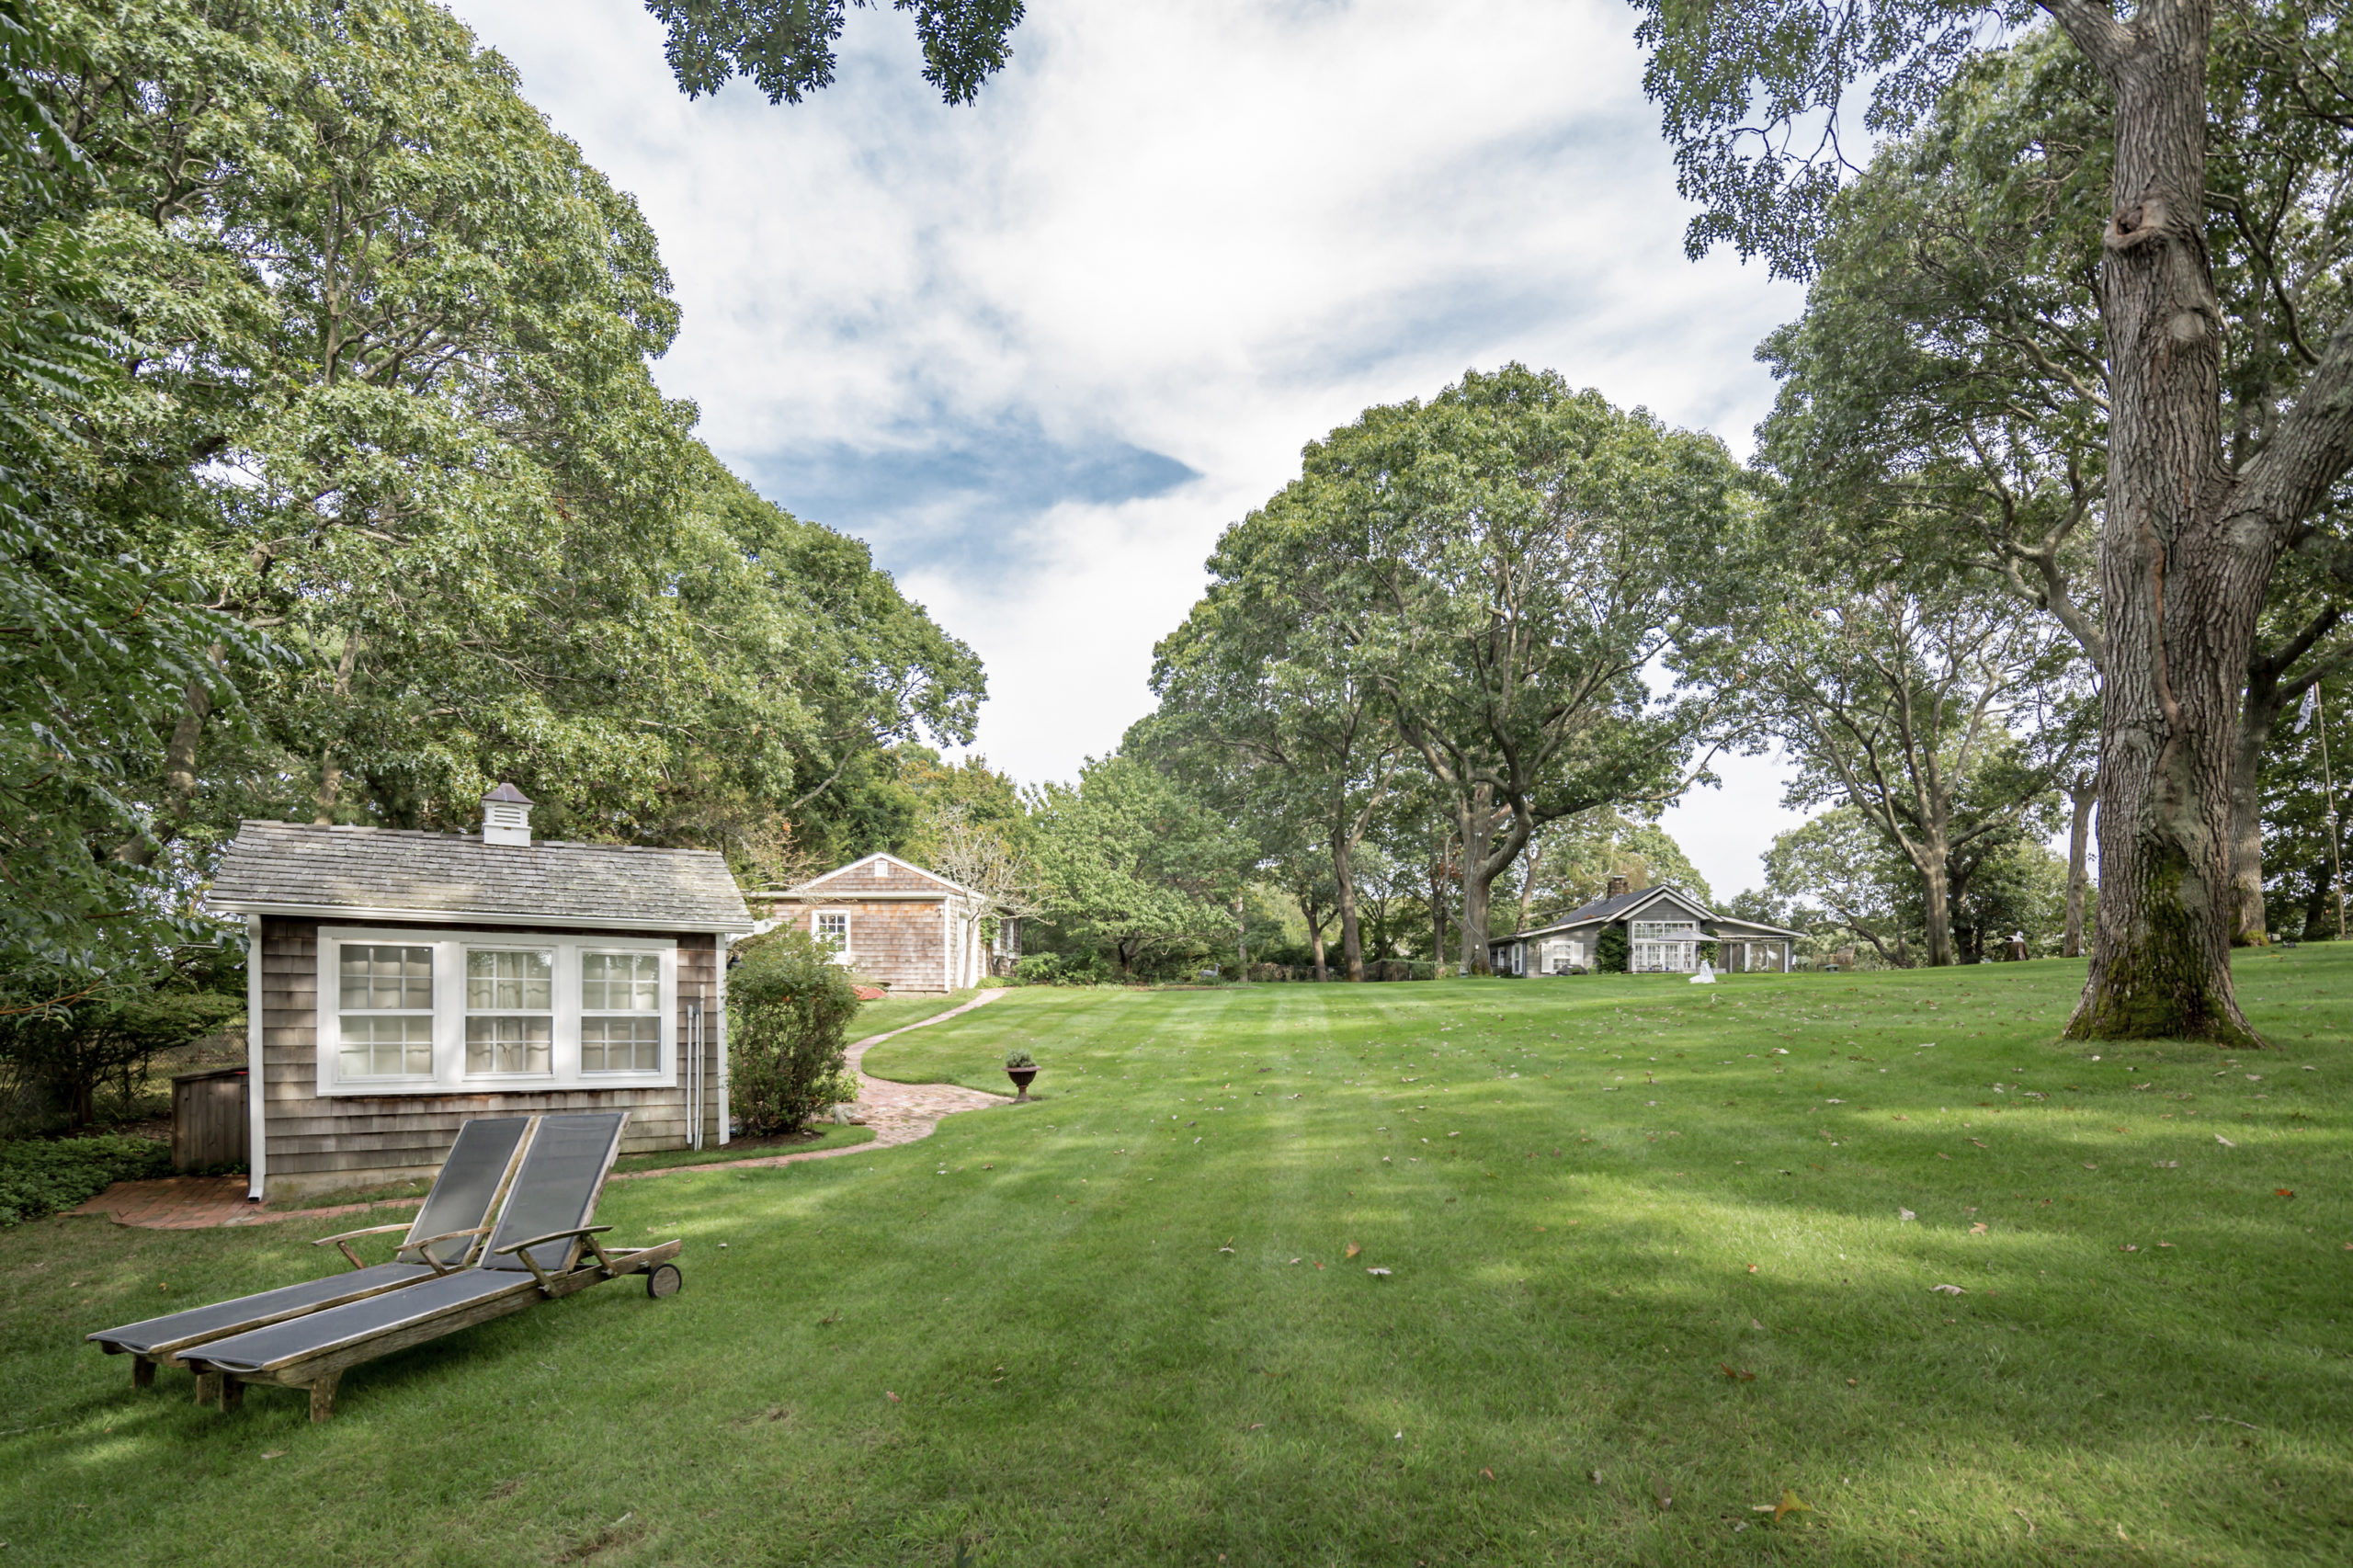 John Steinbeck's Sag Harbor home is on the market for $17.9M.              Gavin Zeigler for Sotheby's International Realty